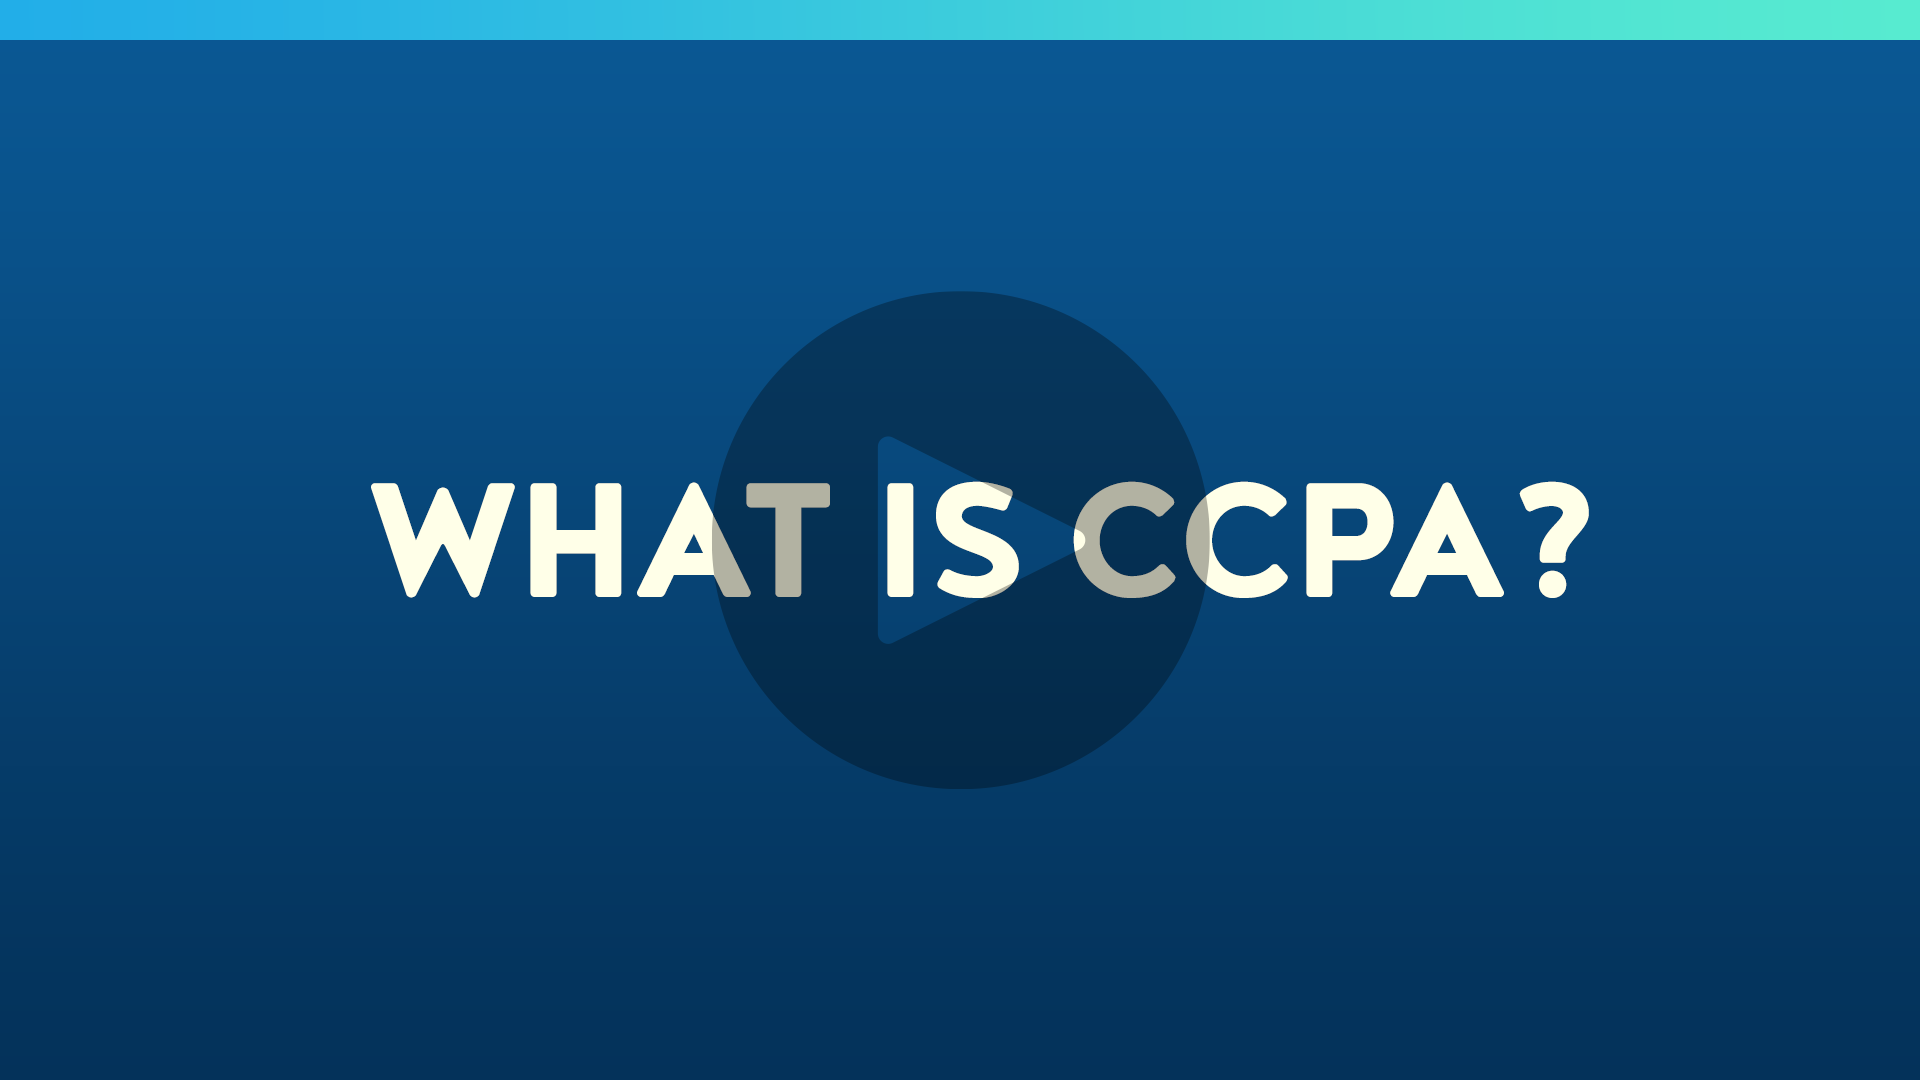 What is CCPA